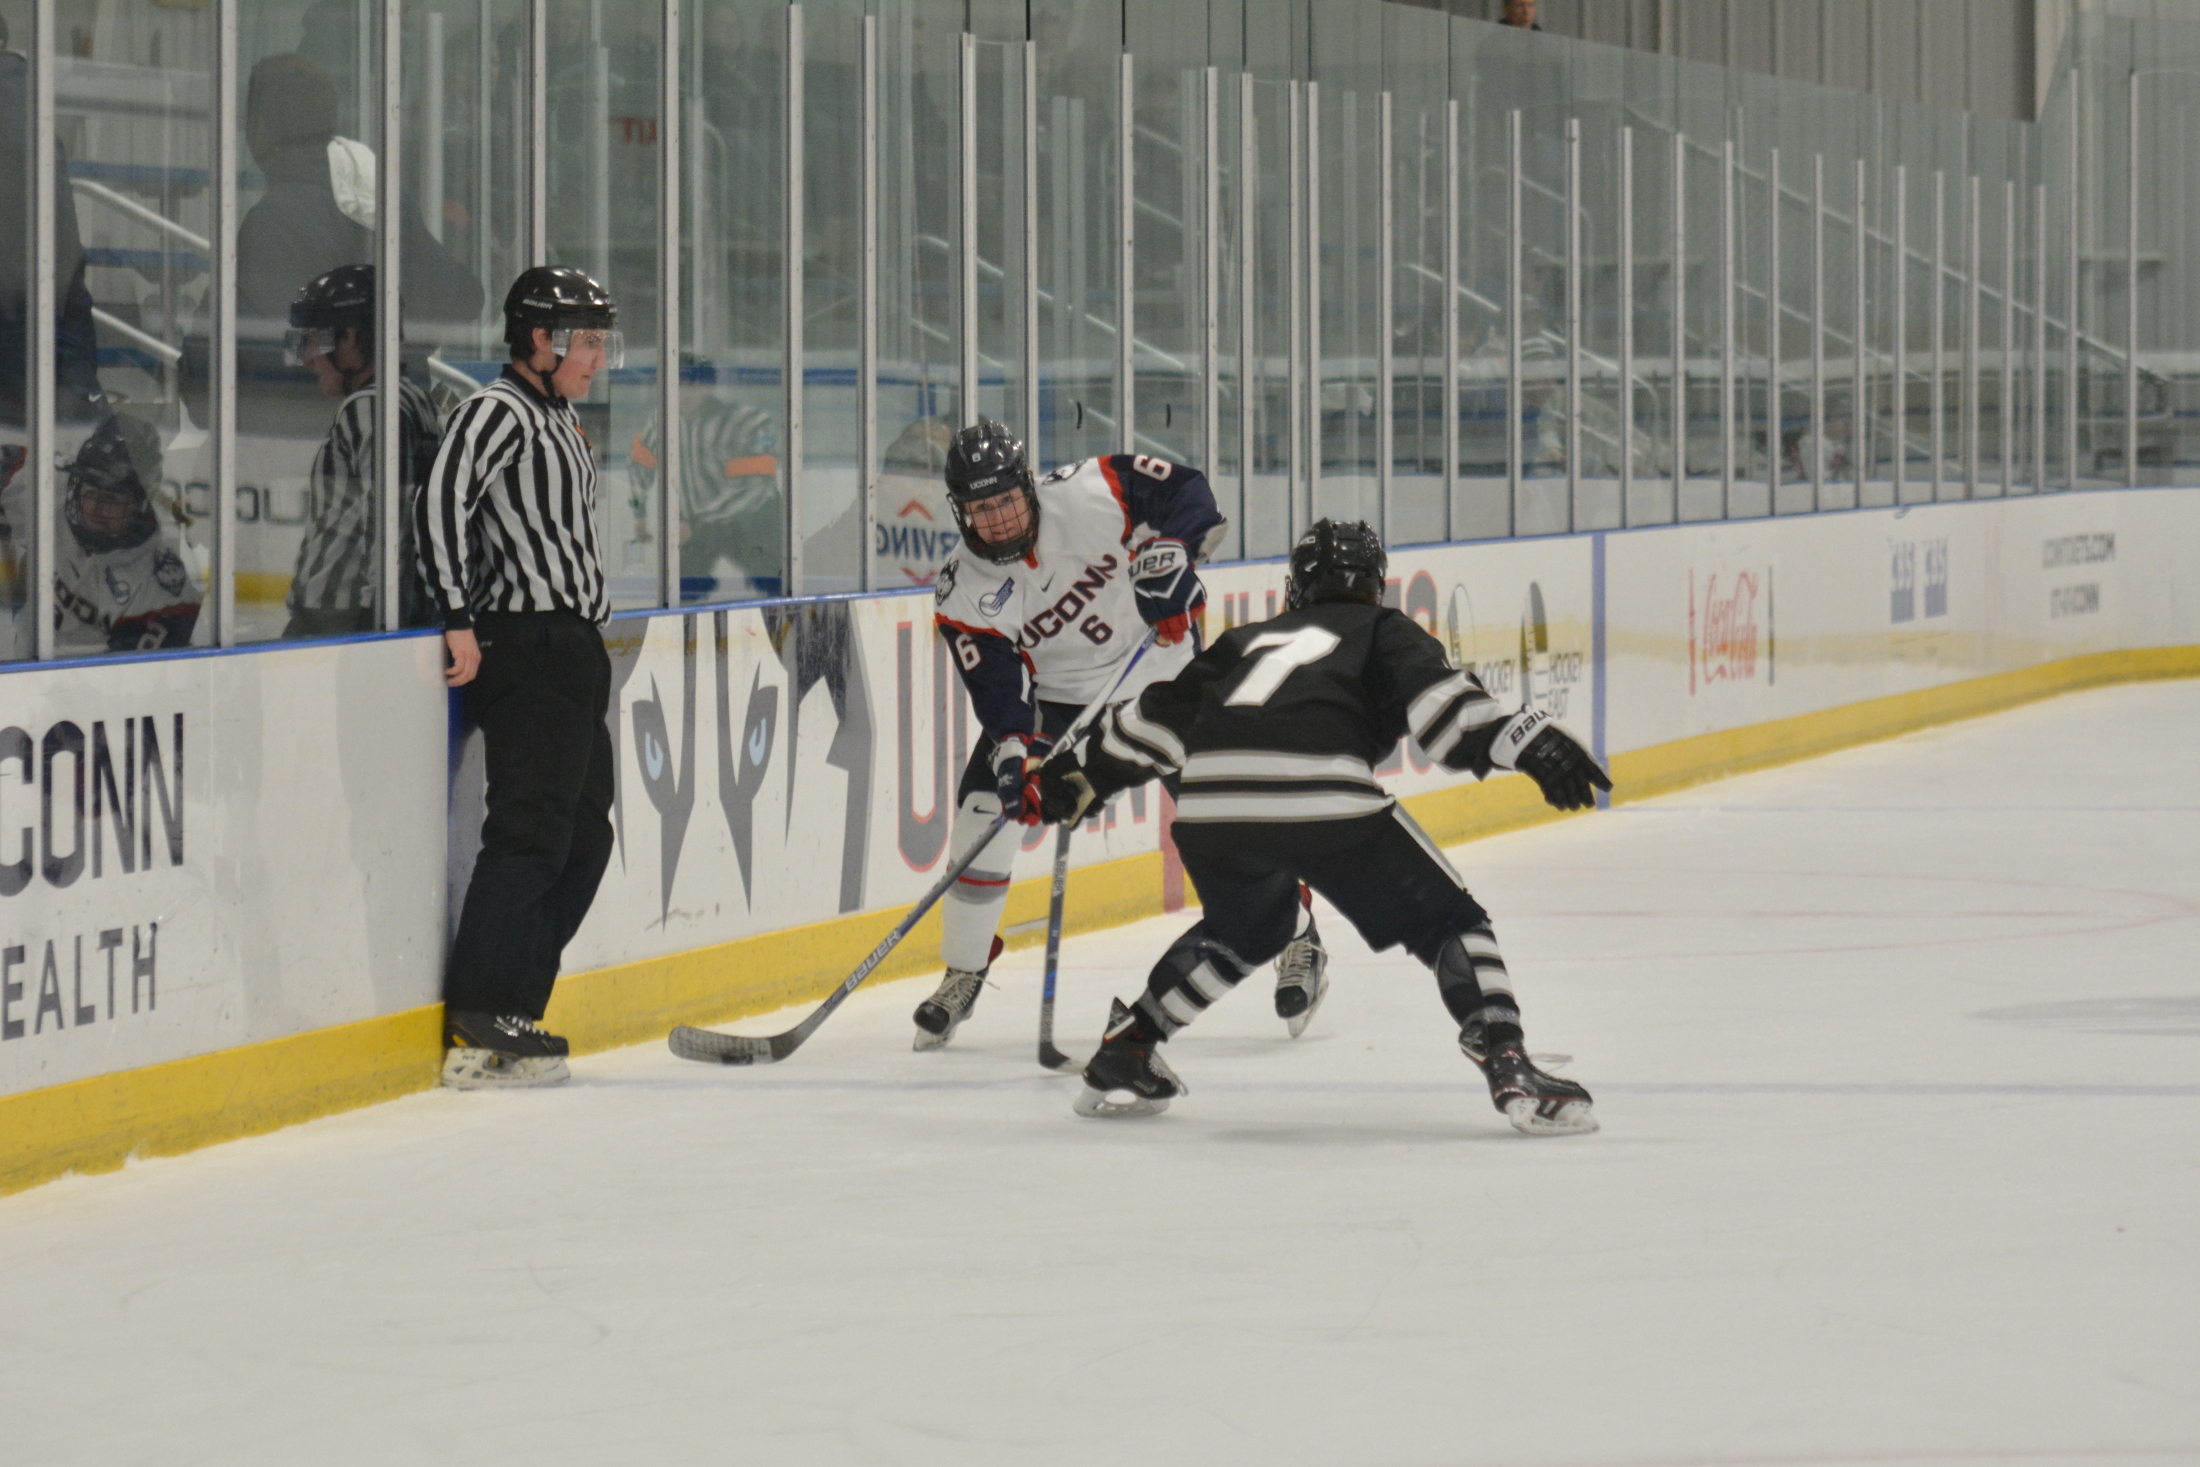 Women's Hockey moves the puck against Providence College, a Hockey East opponent (File Photo/The Daily Campus)